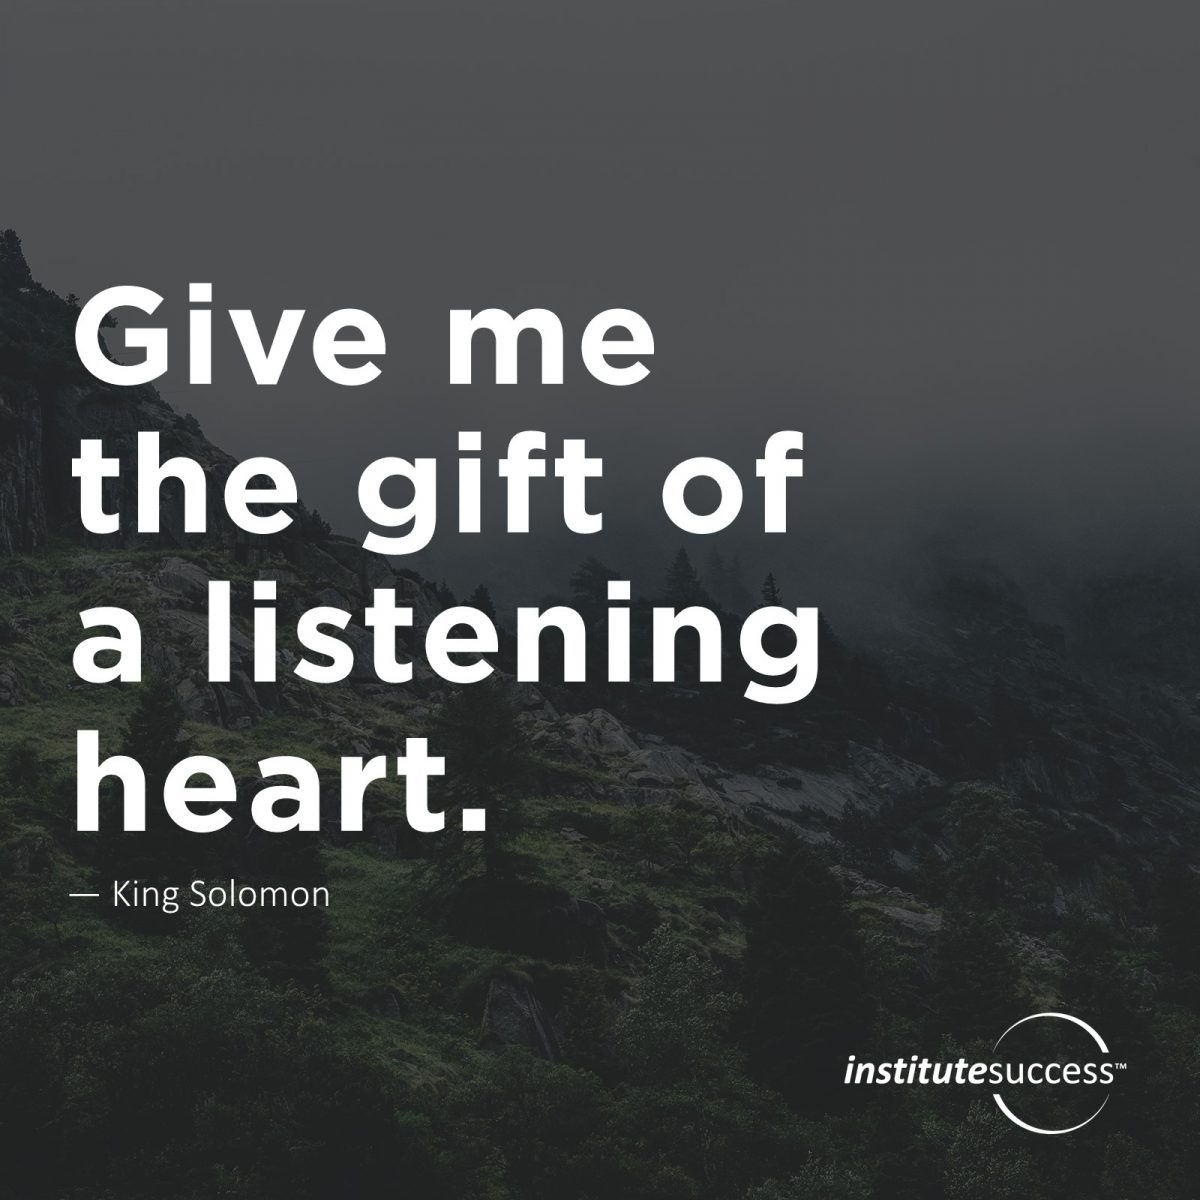 Give me the gift of a listening heart. – King Solomon